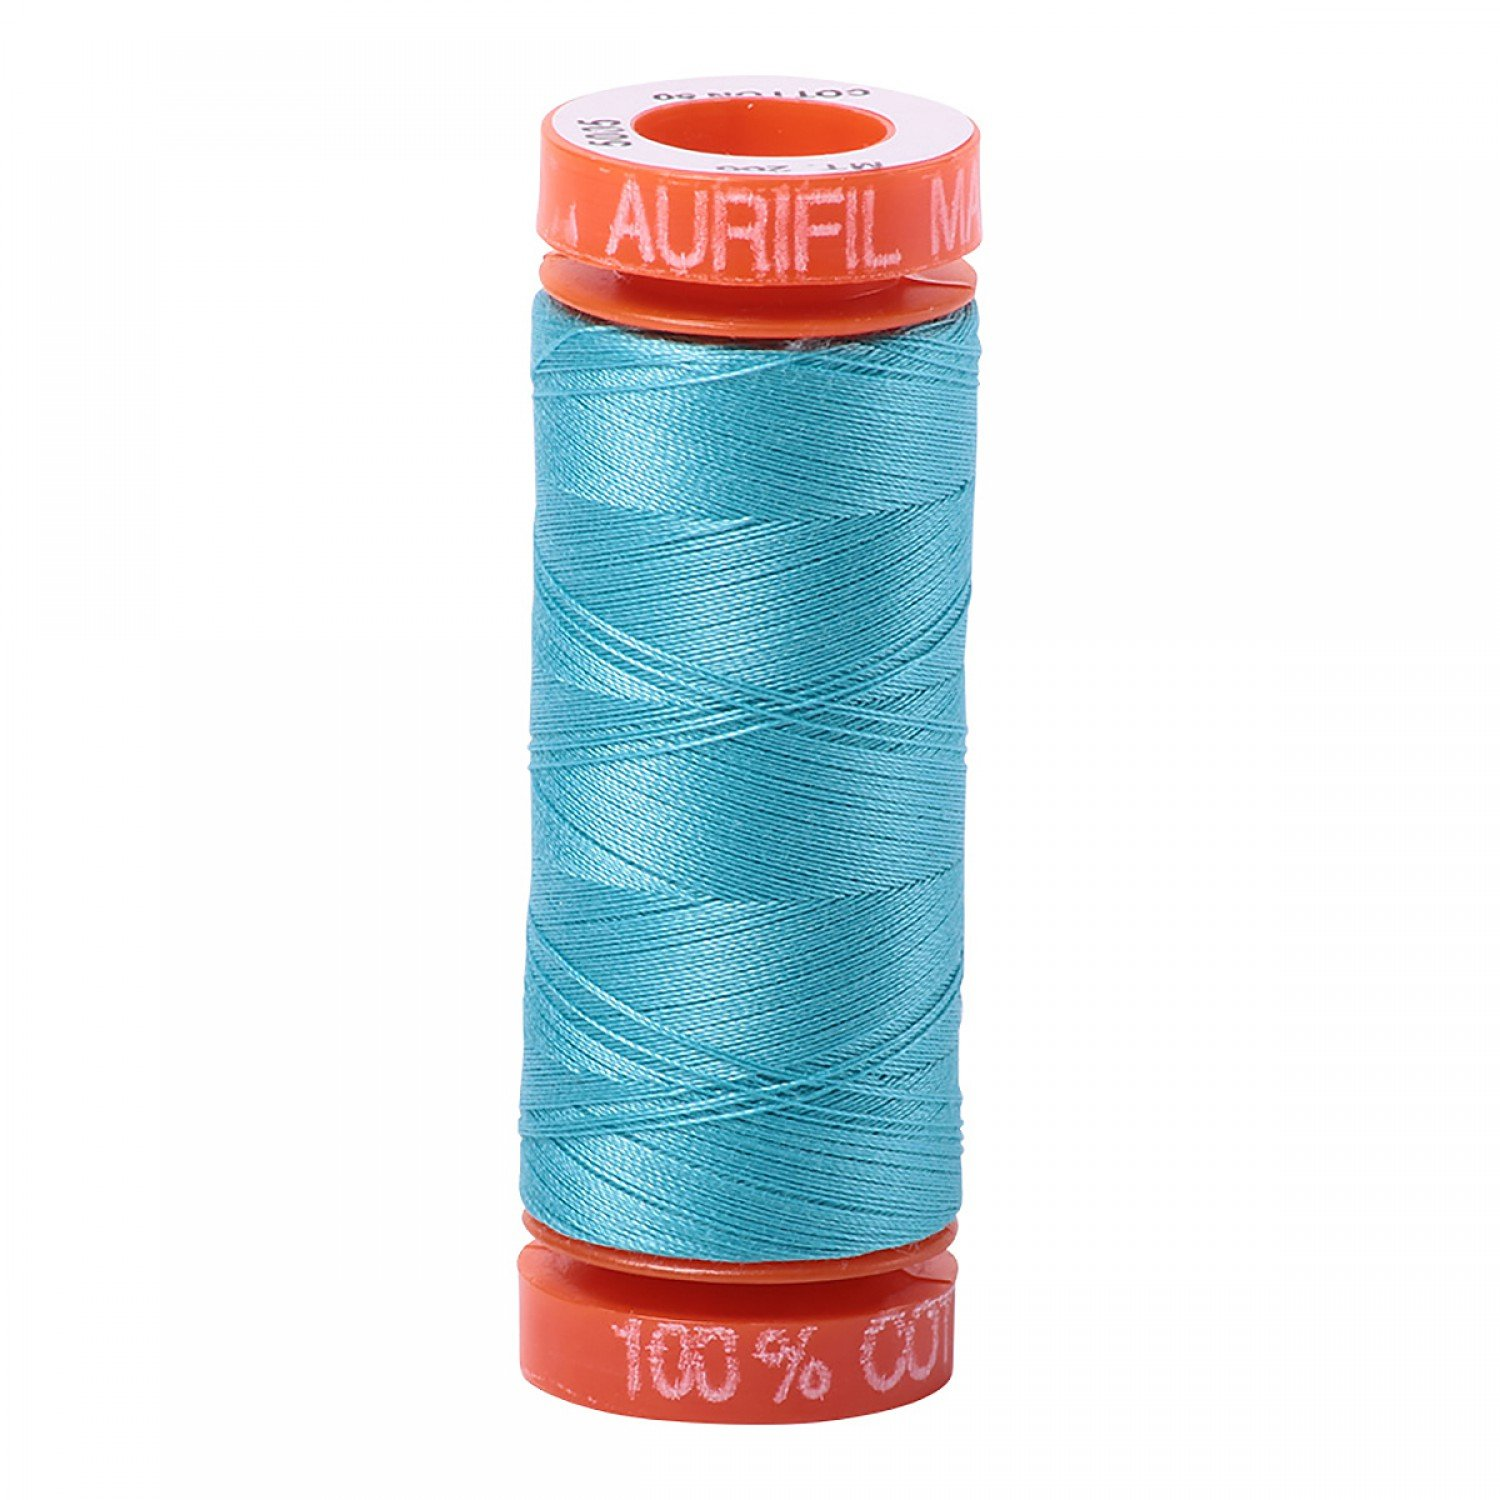 50 wt Aurifil - AS5005 Bright Turquoise*